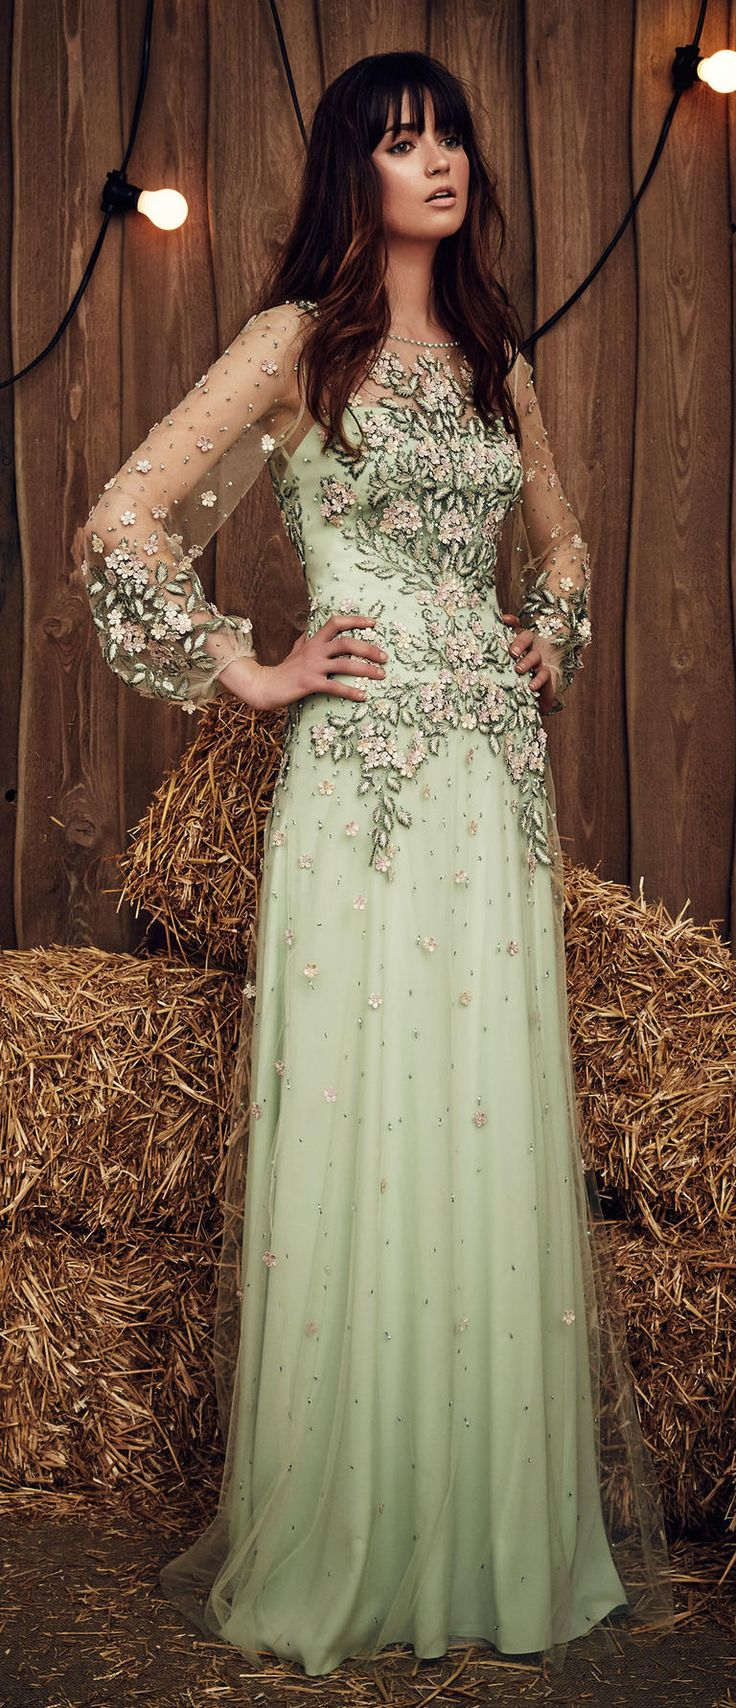 Jenny Packham Spring 2017 Apache wedding dress in celadon green with prink and dark green botanical embellishment and floral appliqués and tulle, long sleeves